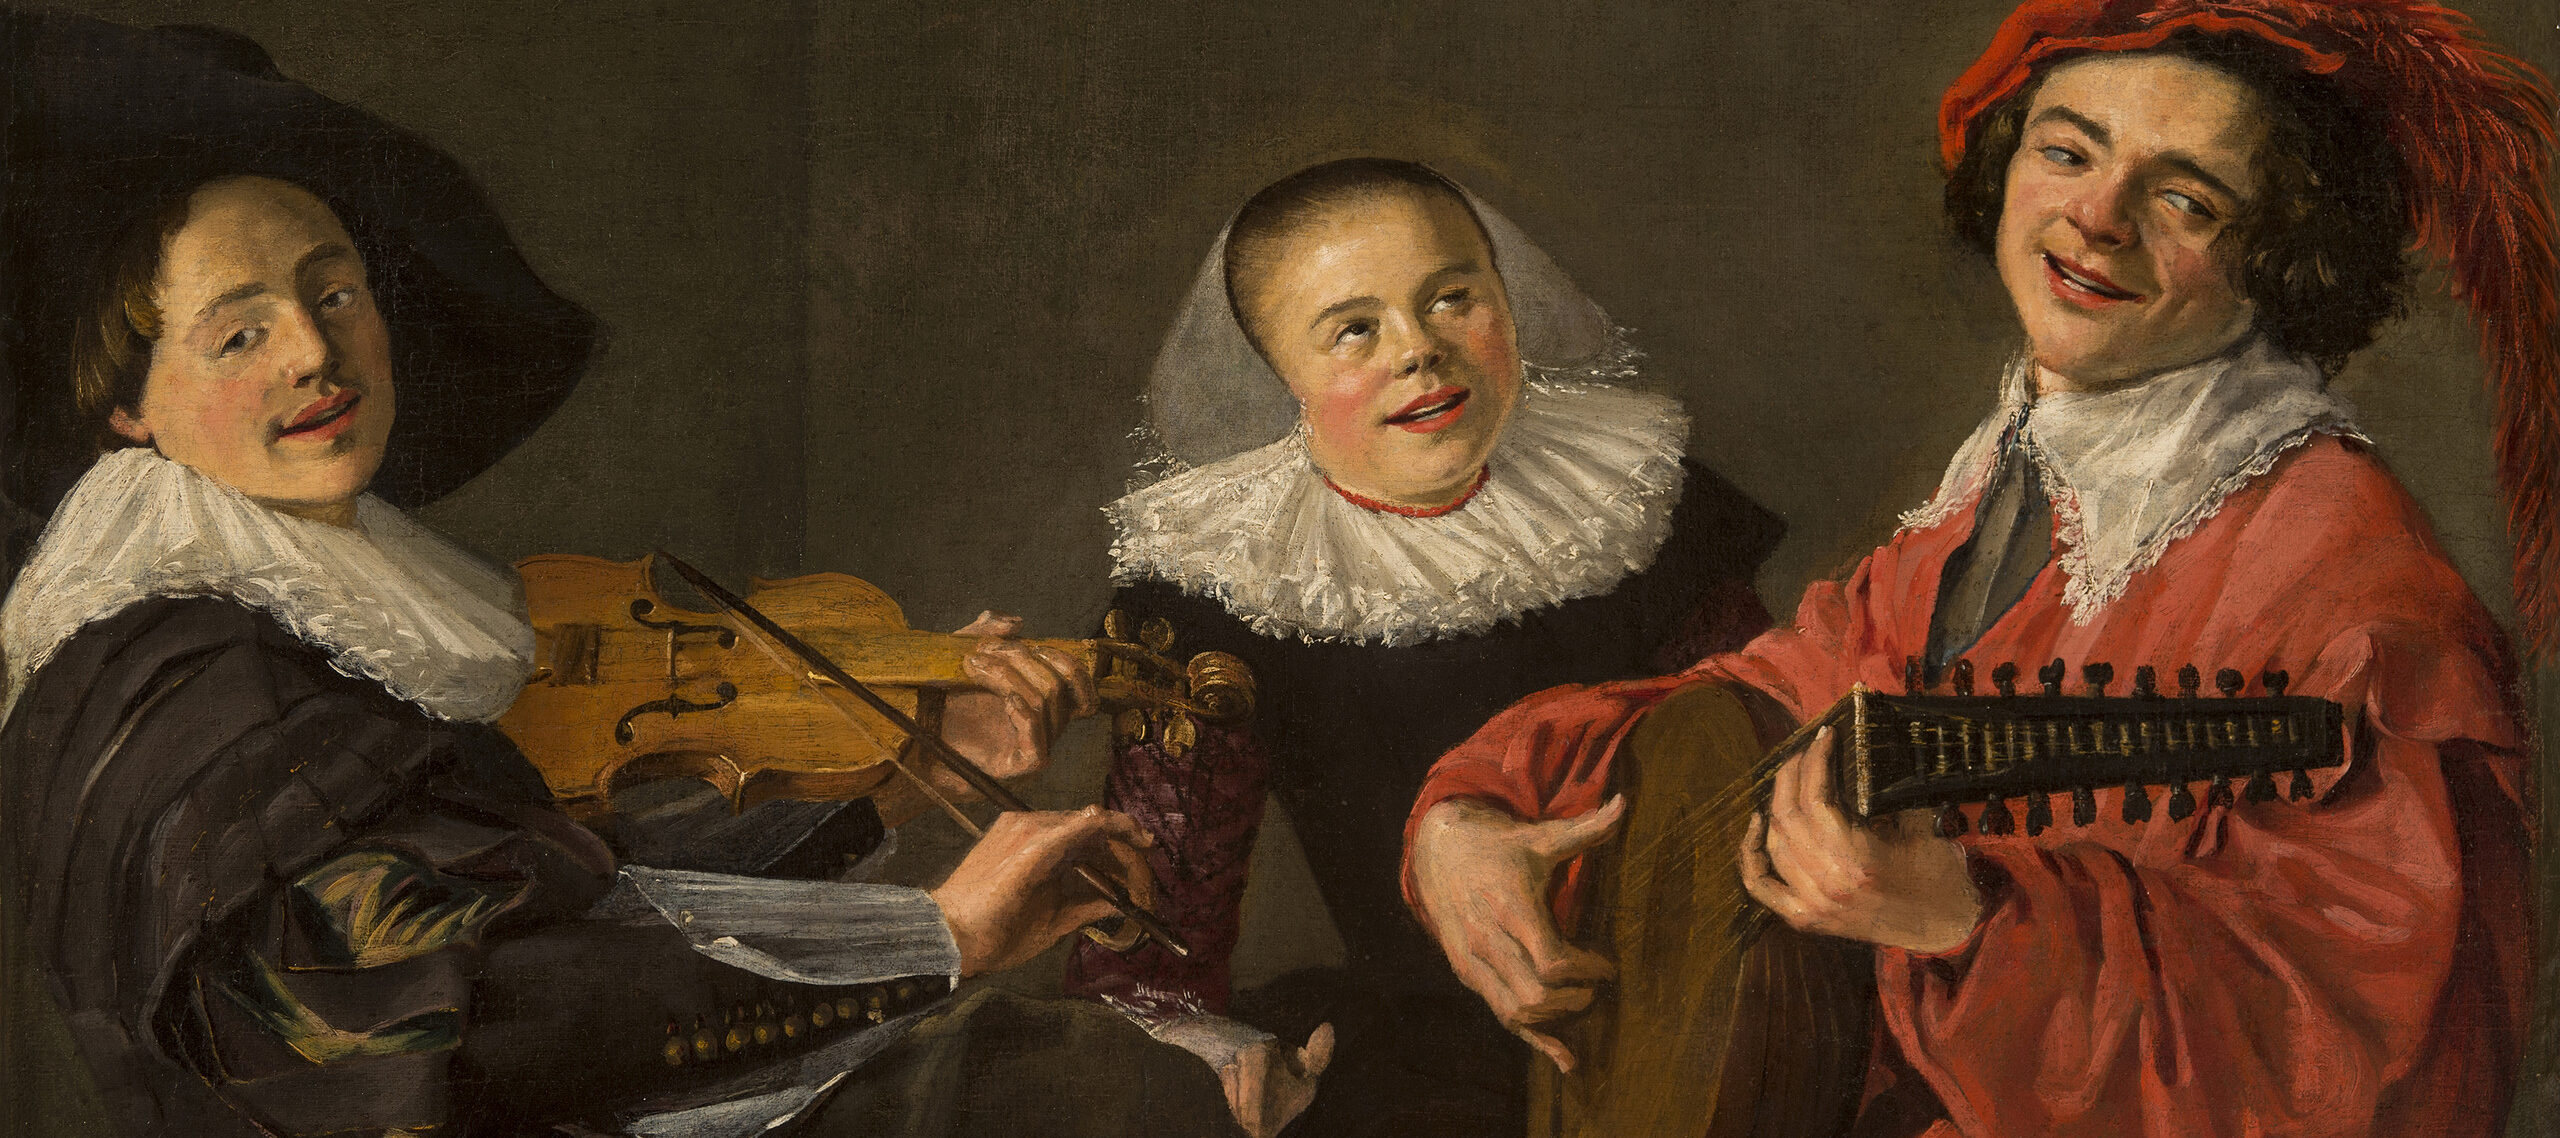 Painting of a trio of smiling musicians. On the left, a man wears a large black hat and plays the violin. On the right sits a man in orange wearing a feathered hat and playing the mandolin. In the center sits a woman dressed in black, opening her mouth in song.